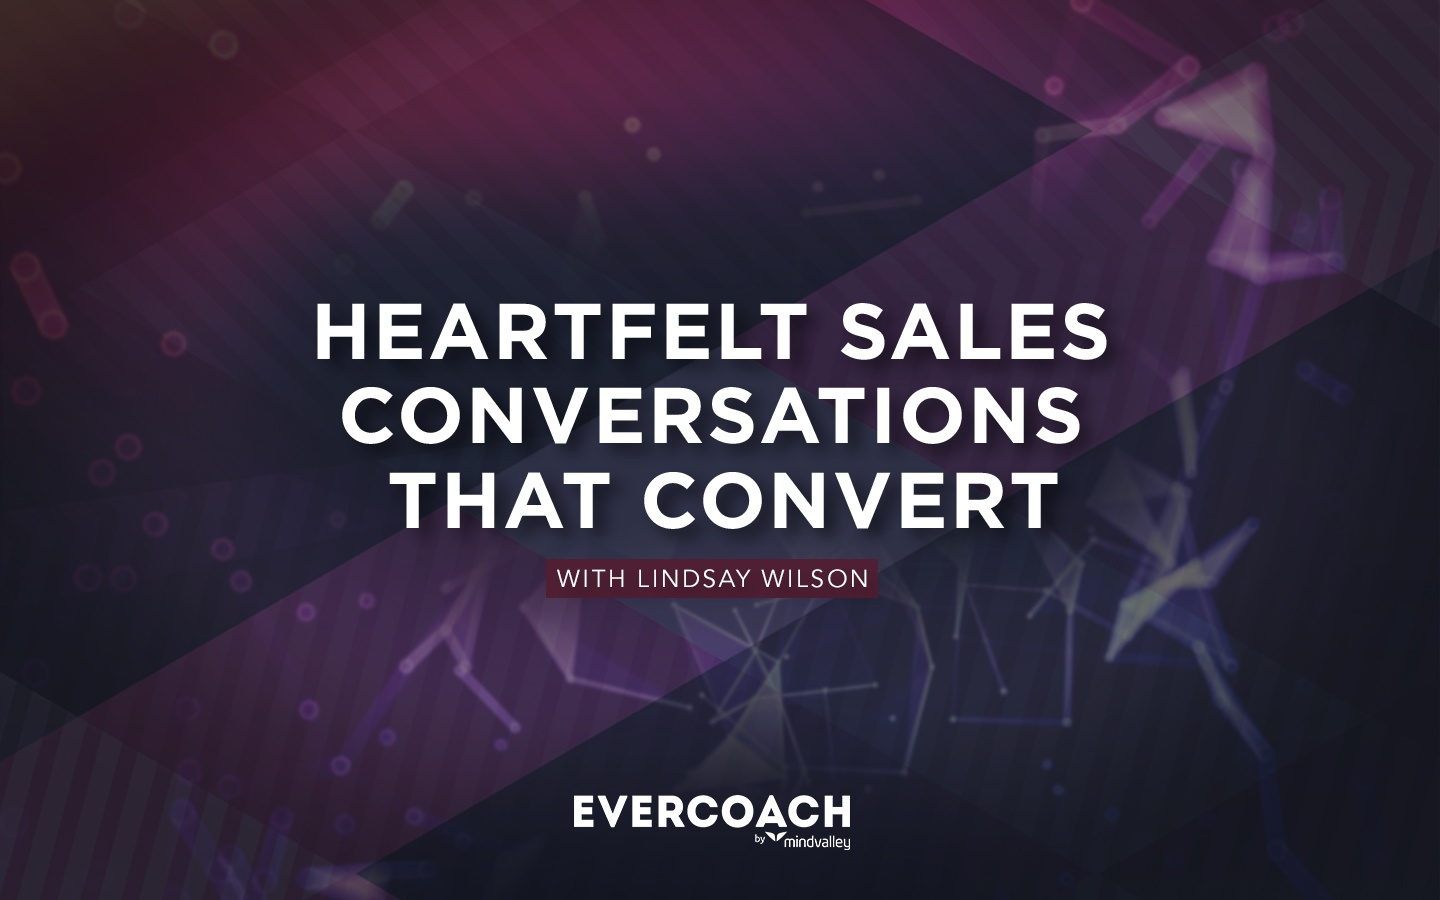 Booked: The High-Converting Sales System